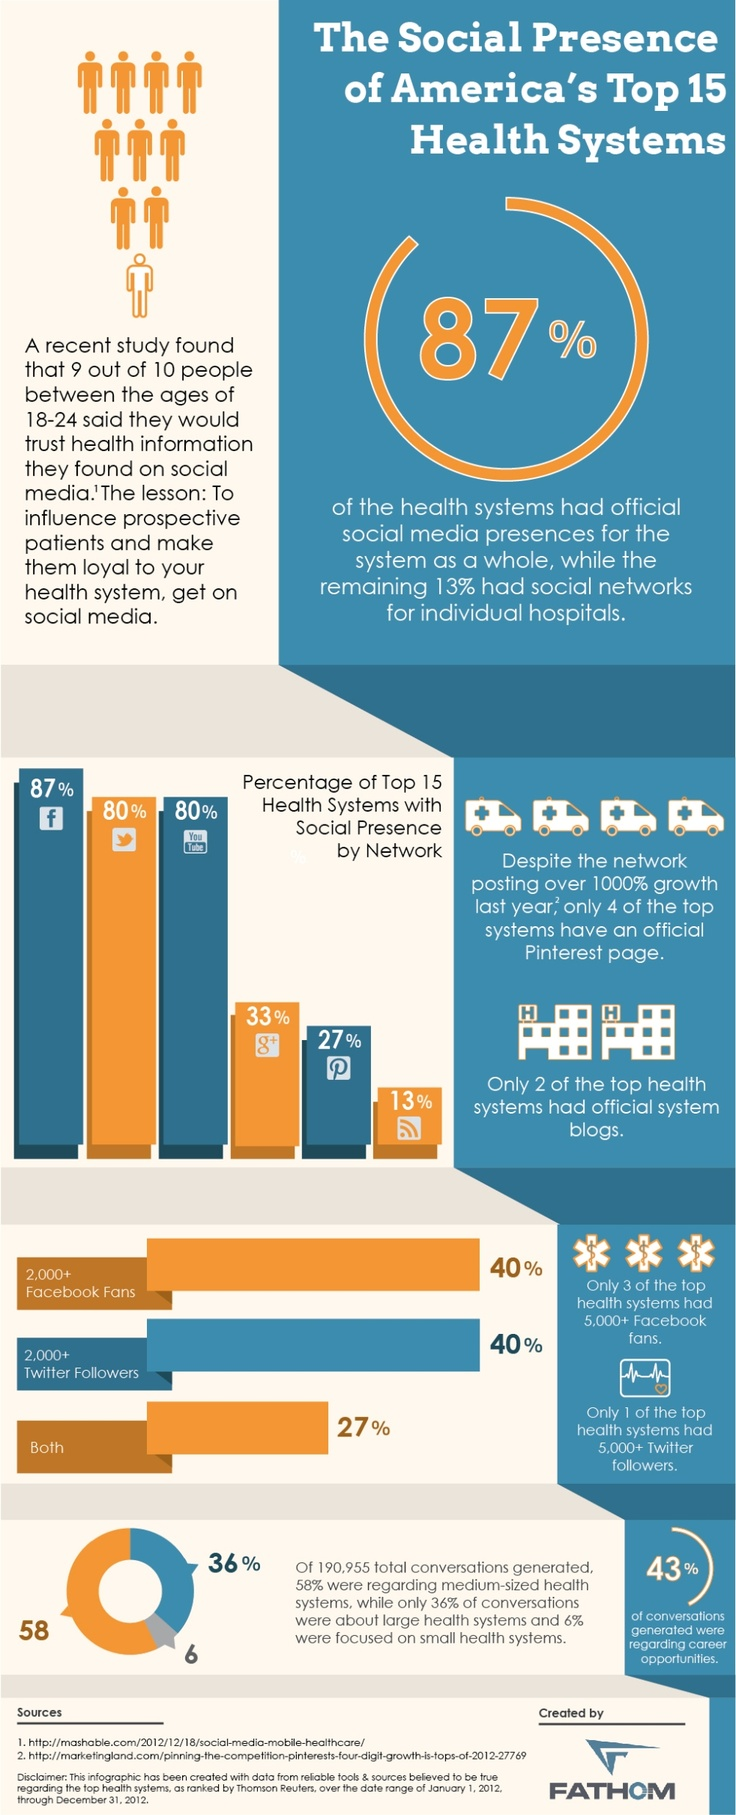 The Social Presence of America's Top 15 Health Systems Infographic